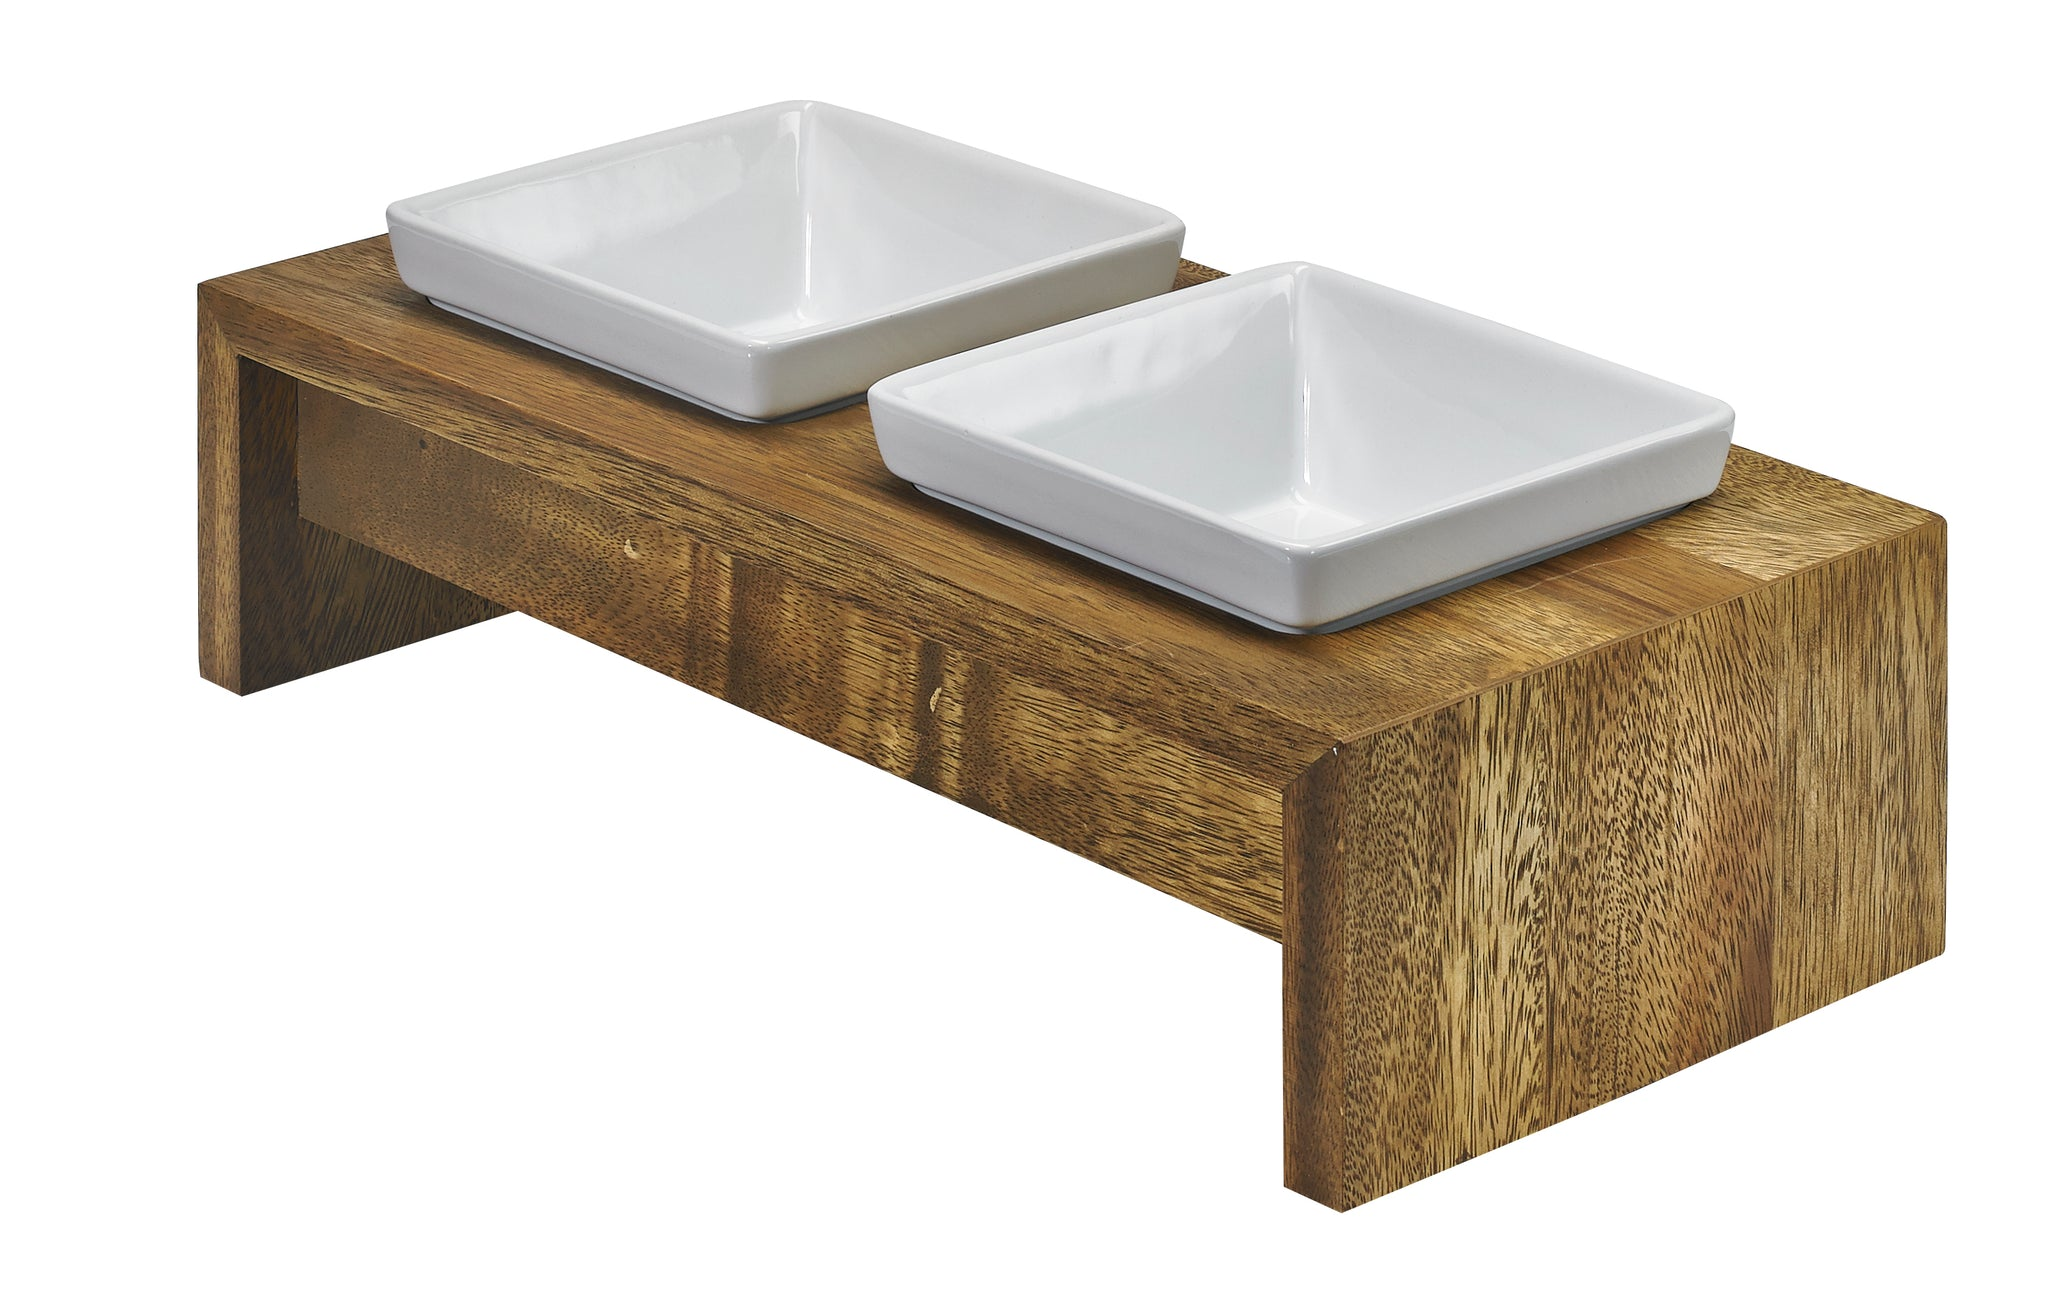 Double Dog Feeder - Bamboo Set & Walnut Set & Replacement Bowls